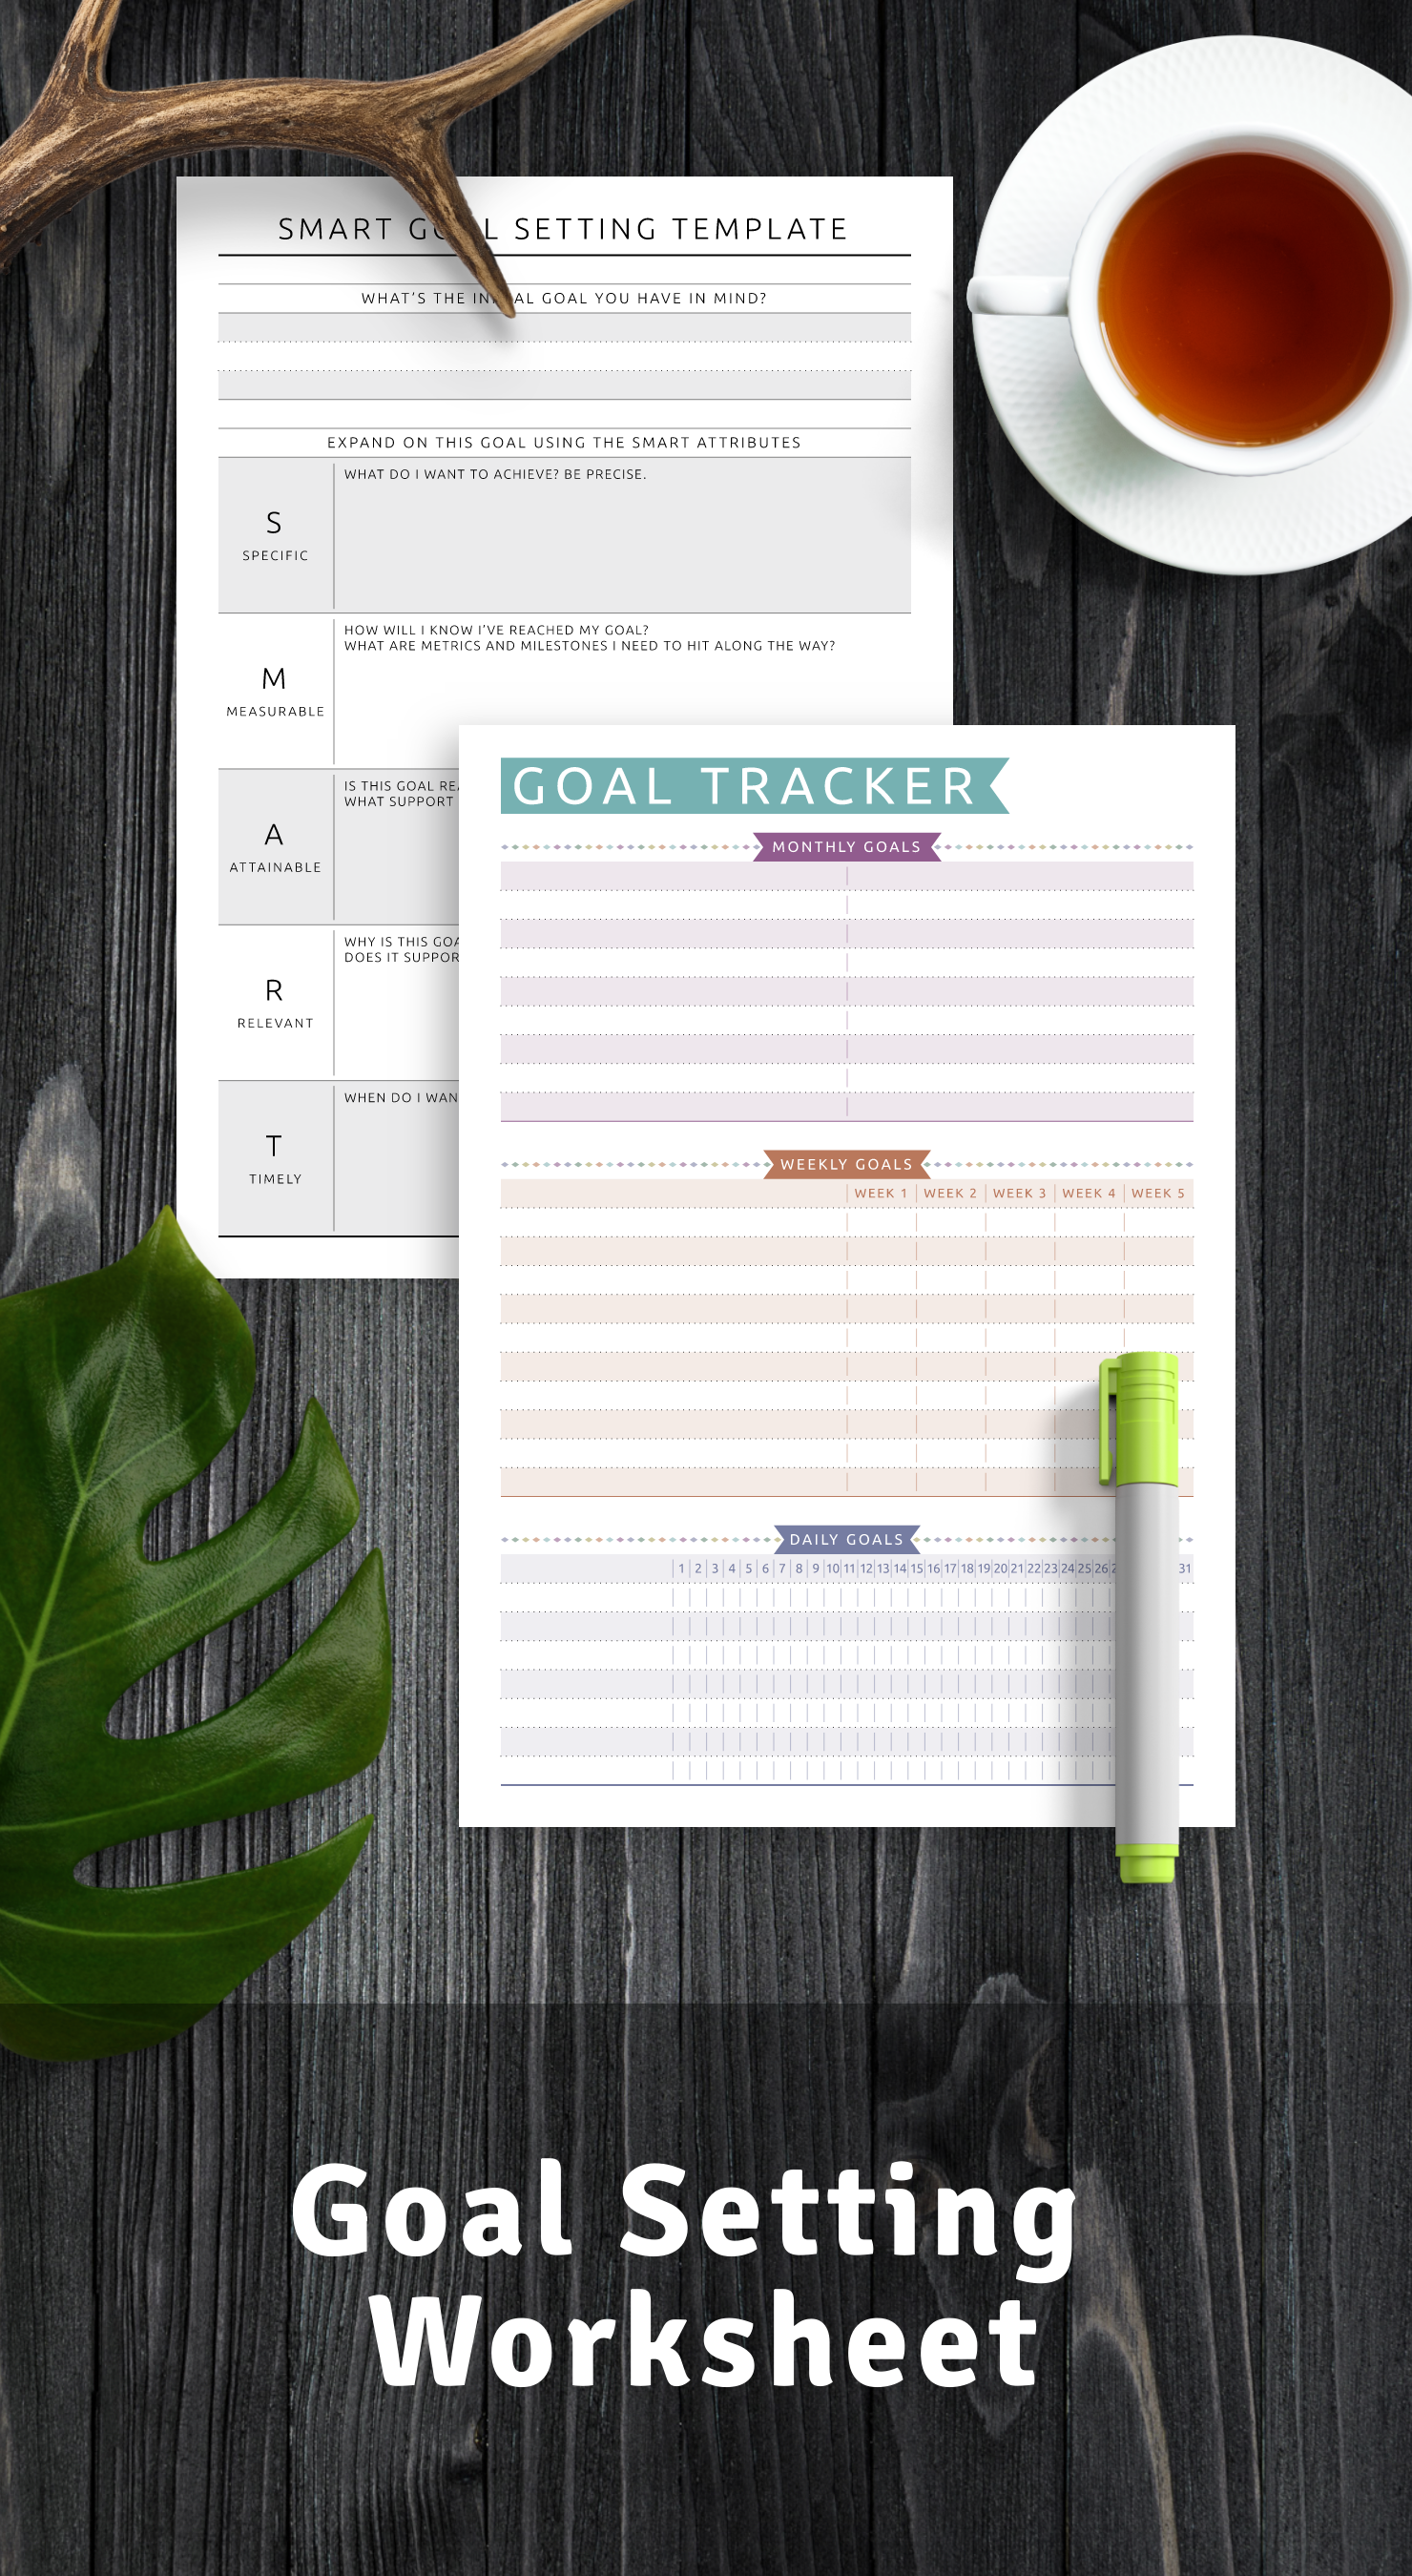 Get Goal Setting Worksheets